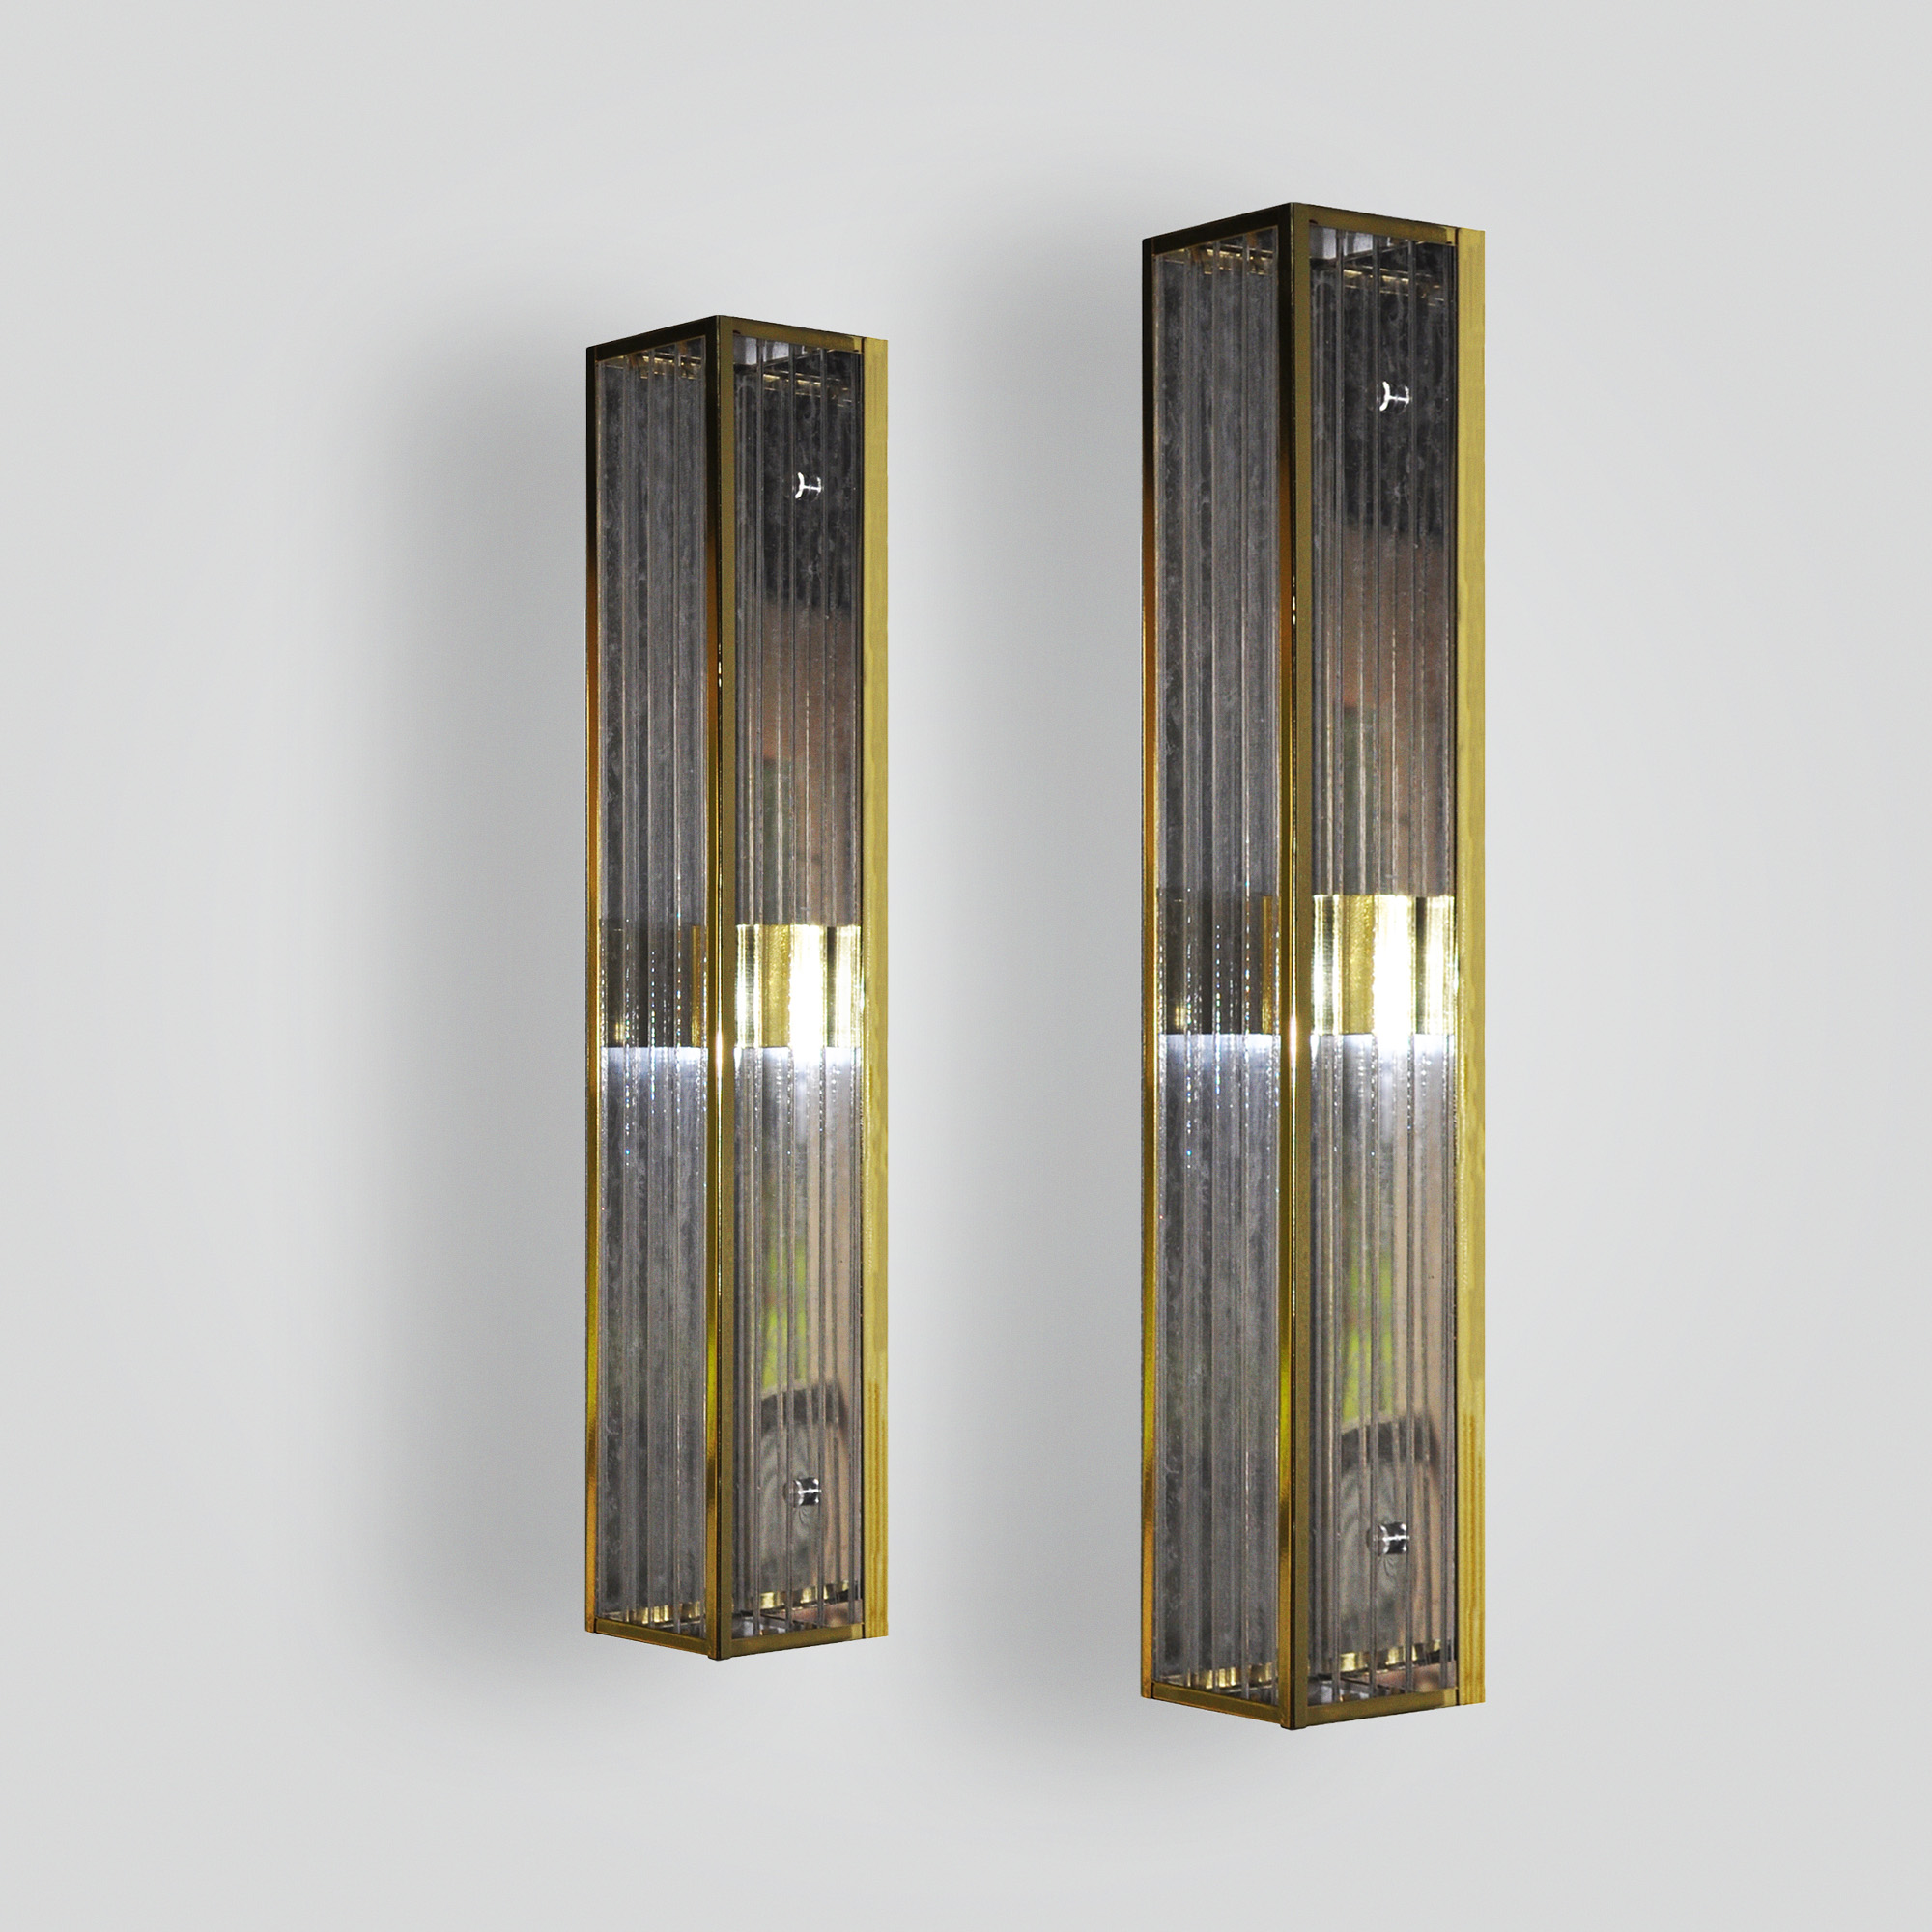 7181-mb2-br-s-sh-polished-brass-wall-sconce-with-ribbed-acrylic-panels – ADG Lighting Collection